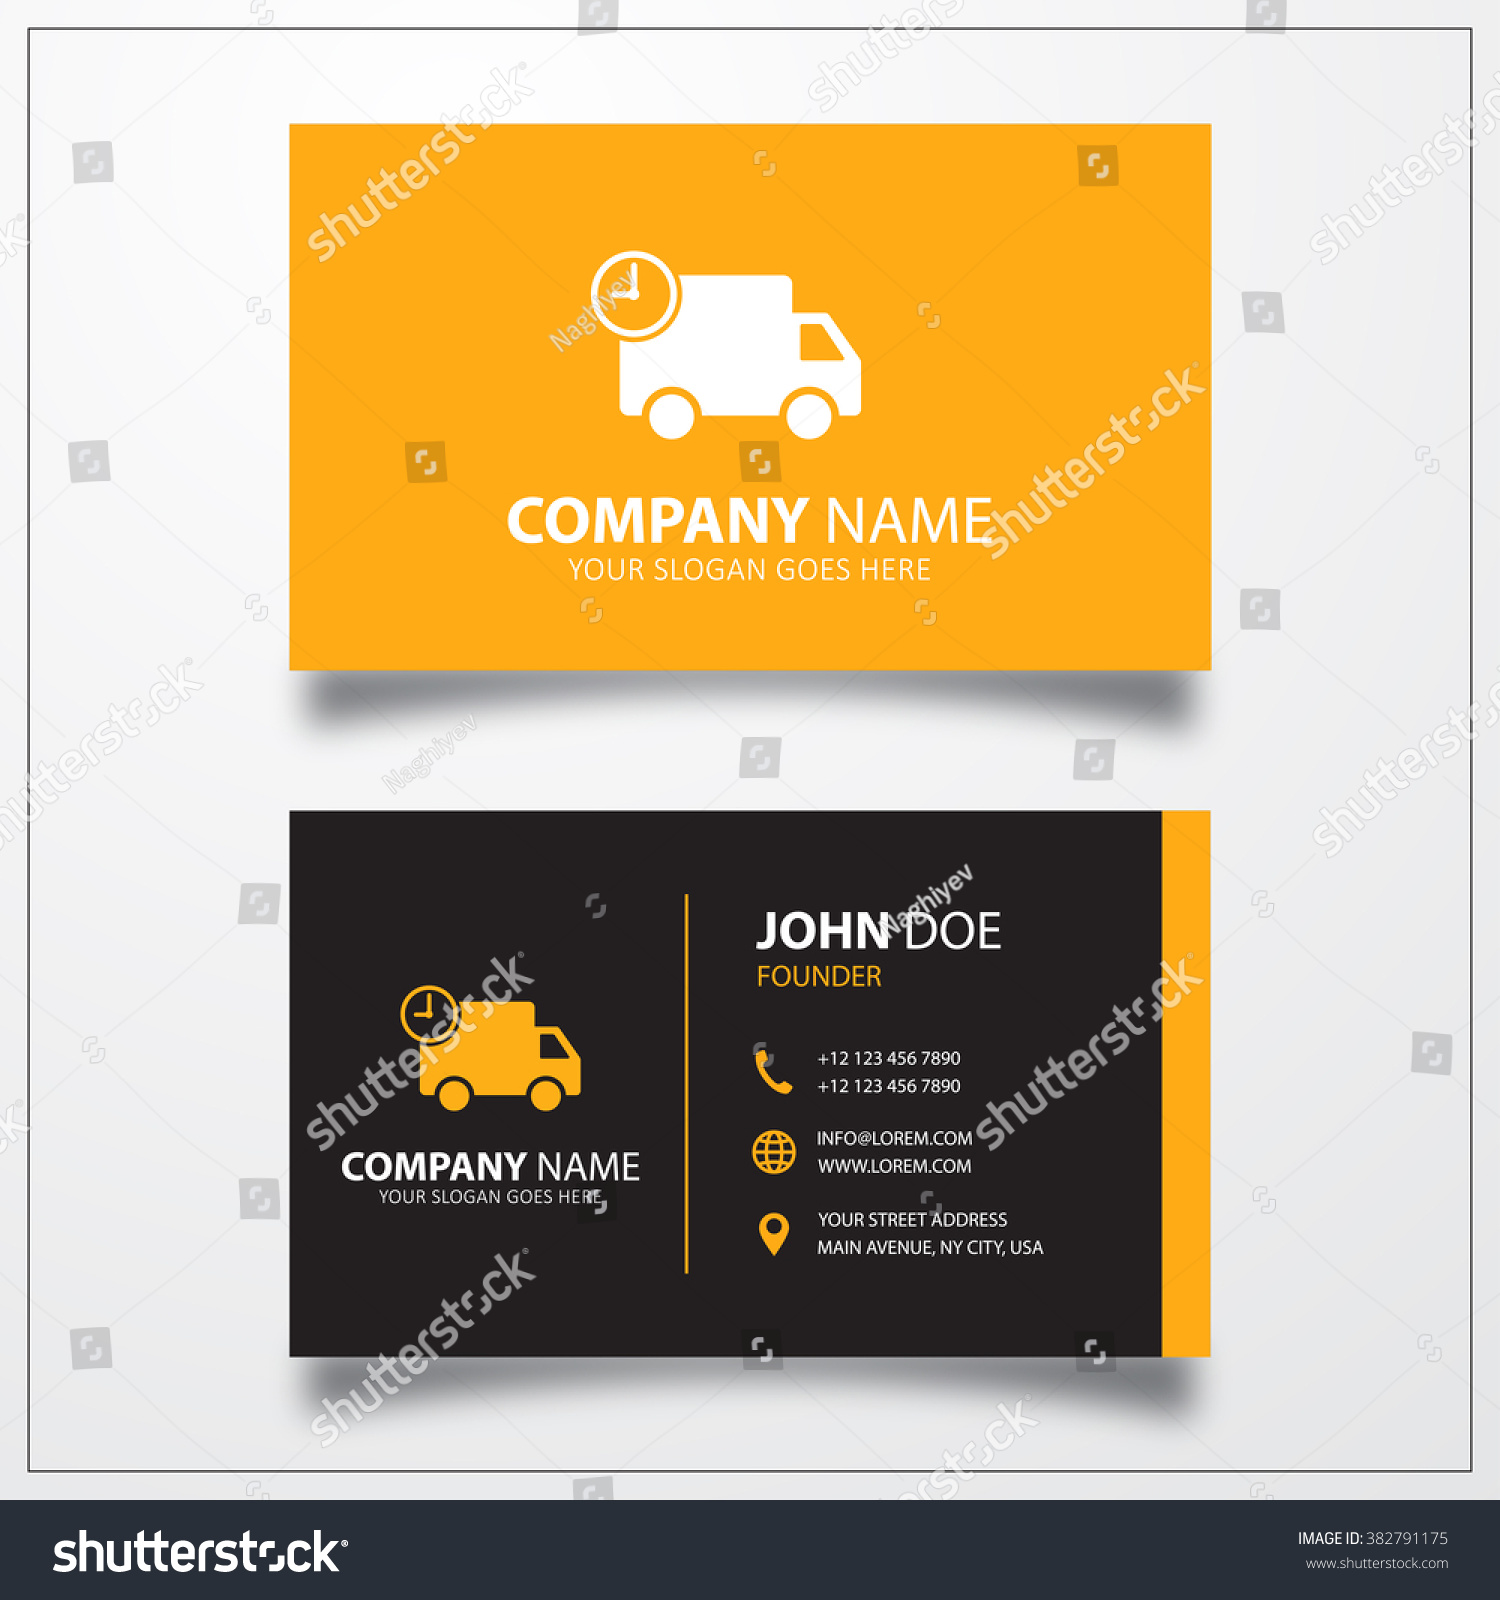 Unique Photograph Of Quick Delivery Business Cards - Business ...